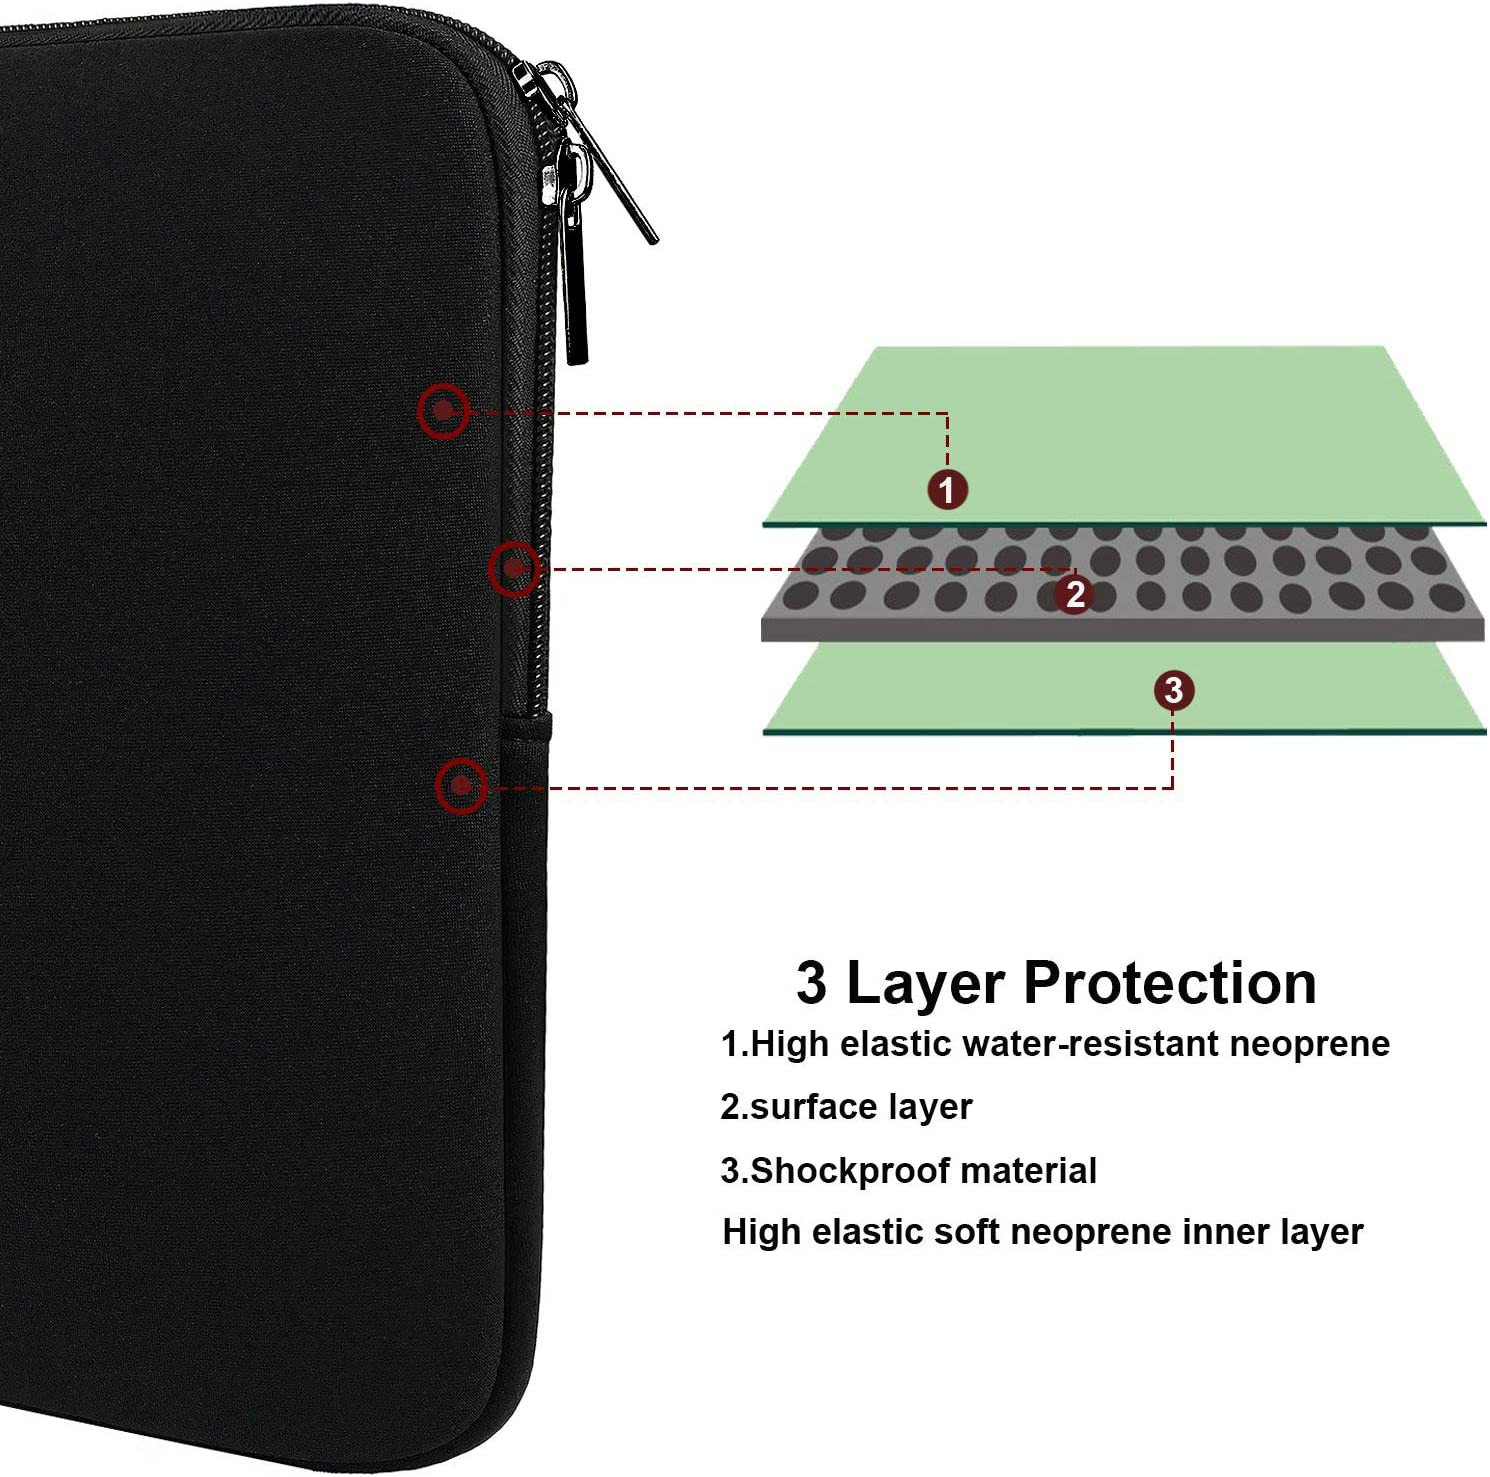 Waterproof Laptop Sleeve 13 Inch Asus Notebook Computer Case Cover for Ultrabook MacBook Pro Mandolin Kentucky Business Briefcase Protective Bag MacBook Air Samsung Sony